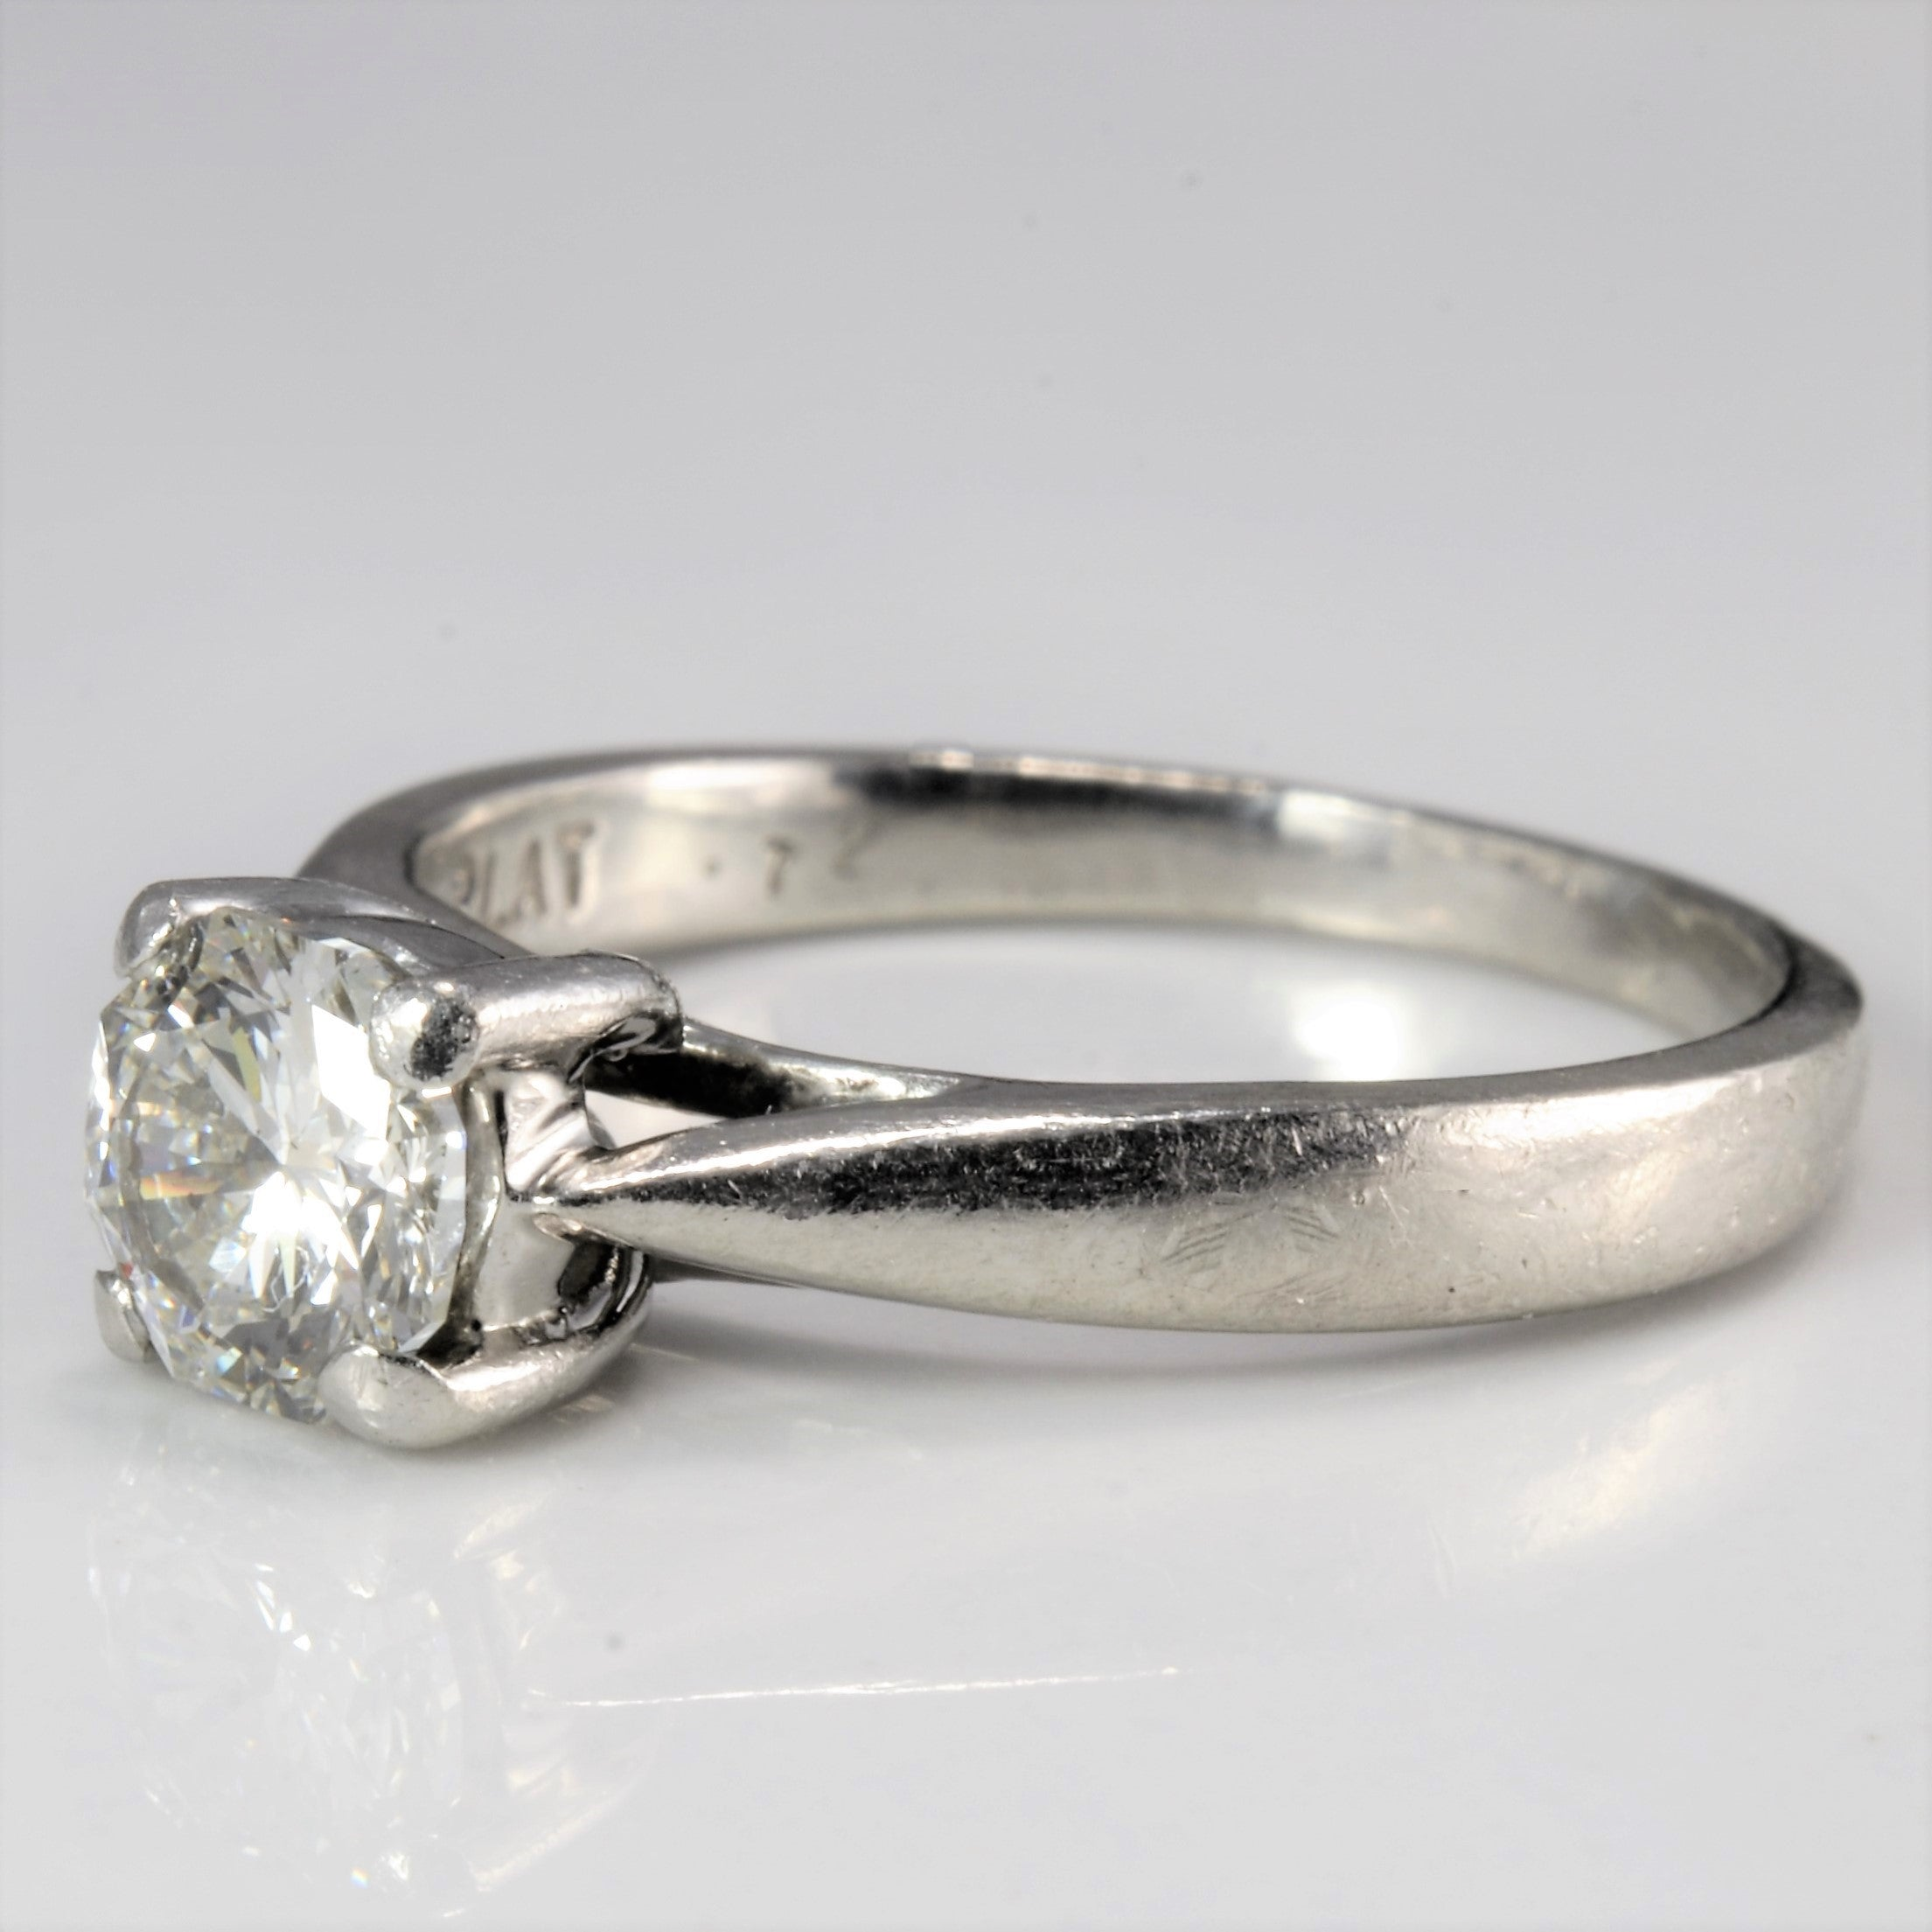 High Set Solitaire Diamond Engagement Ring | 0.72 ct, SZ 6 |